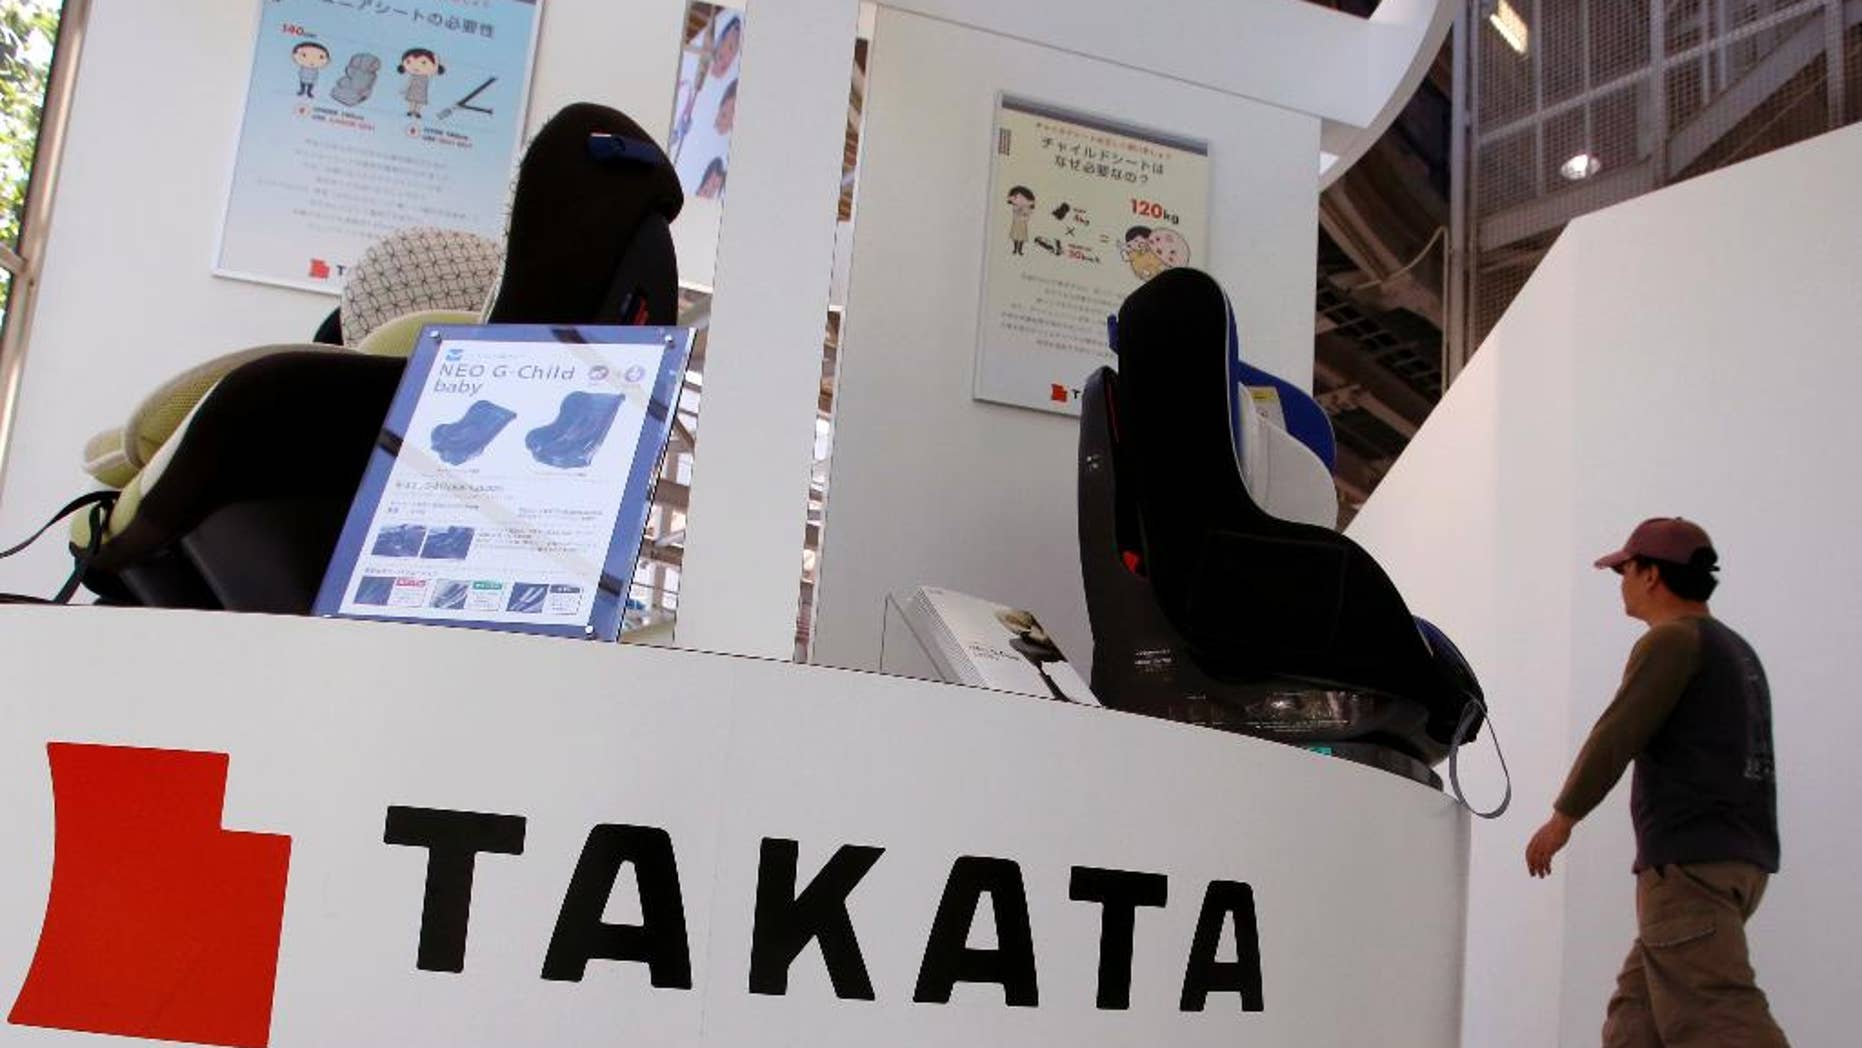 FILE - In this Wednesday, May 4, 2016 file photo, a visitor walks past child seats, manufactured by Takata Corp., displayed at an automaker's showroom in Tokyo.  A criminal complaint has been filed in Japan about a Takata air bag causing injuries during a crash, the first such case in this nation related to an unfolding massive recall. Takata Corp. said Wednesday, June 8, 2016,  it was fully cooperating with the investigation of the accident, in which a woman in the front passenger seat of a Nissan X-Trail sport-utility vehicle was injured.(AP Photo/Shizuo Kambayashi, File)